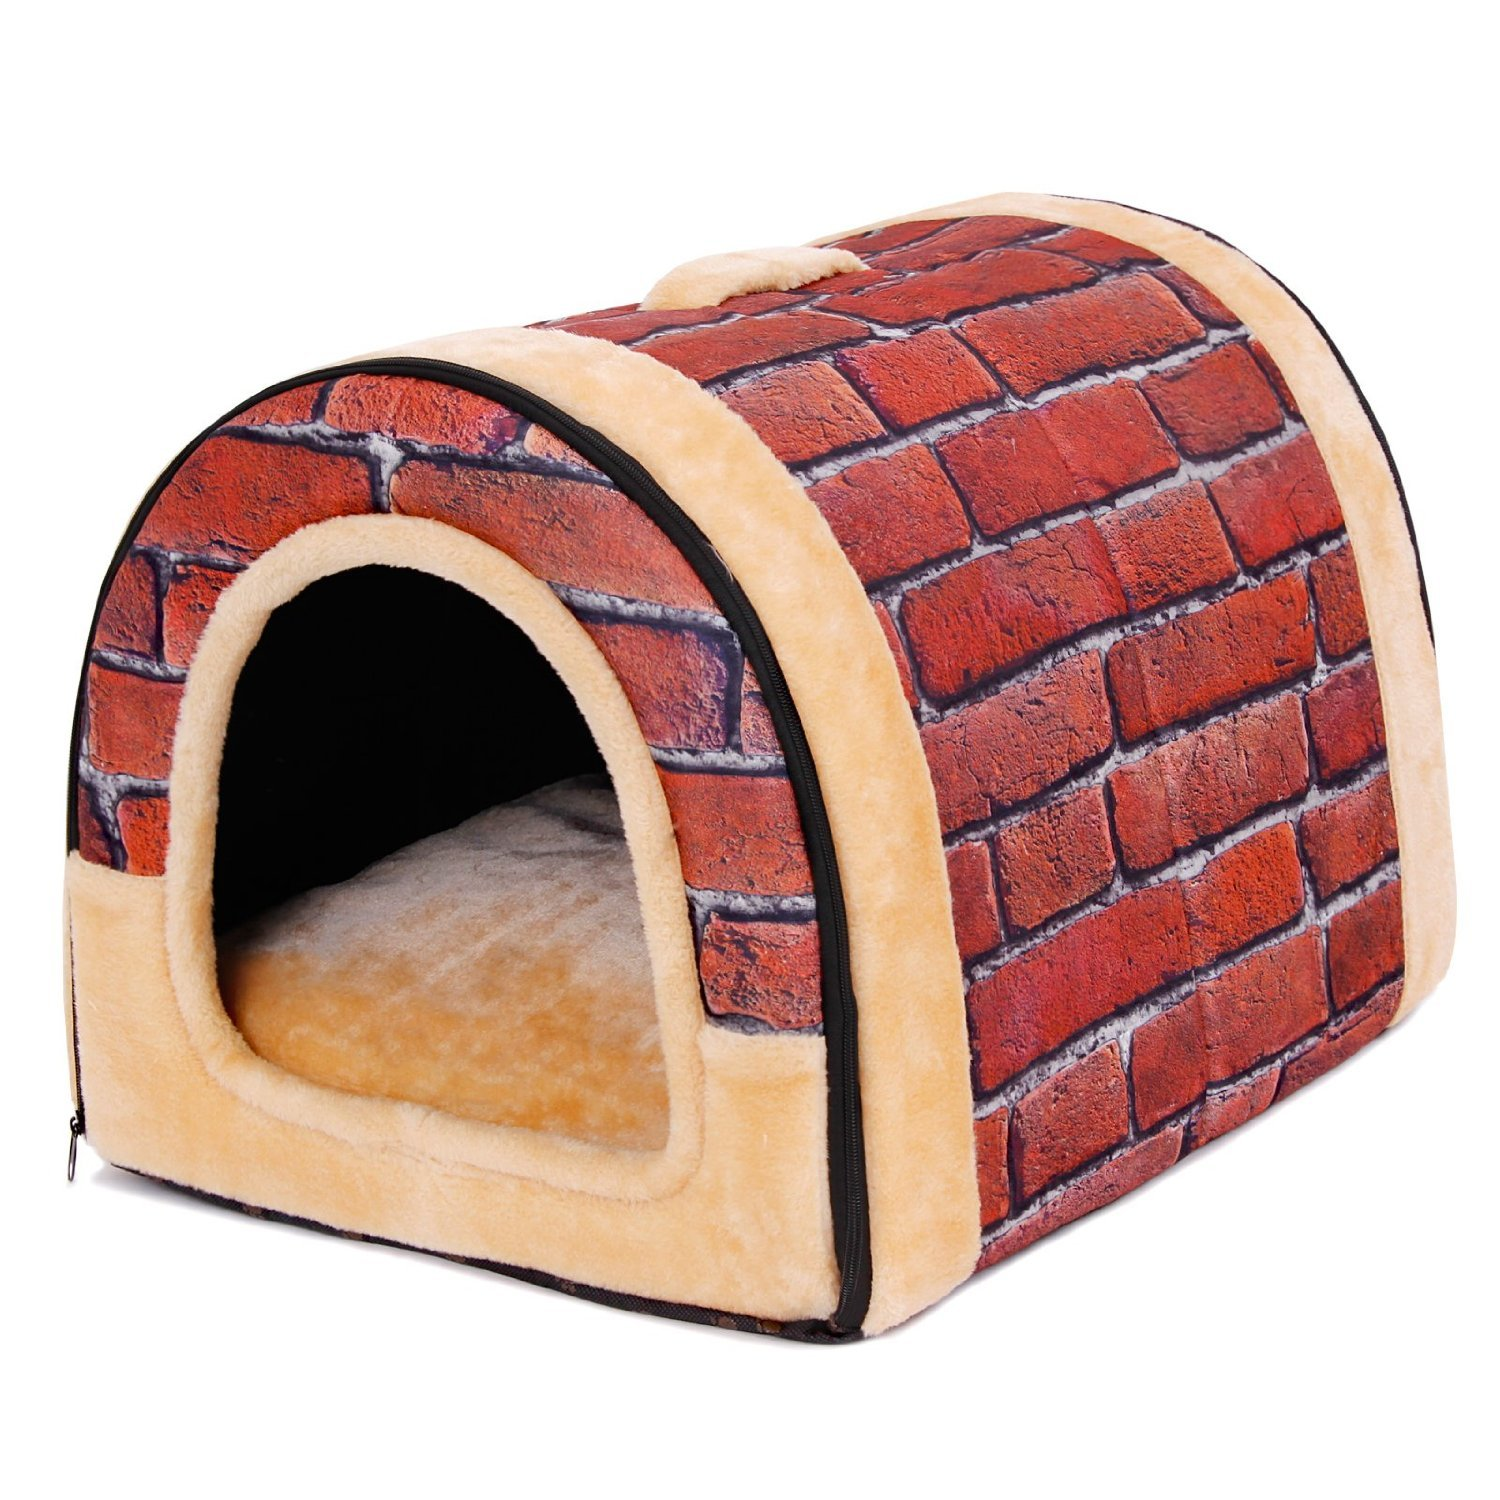 PAWZ Road 2-in-1 Pet house and Sofa Non-Slip Dog Cat Igloo Beds 3-Size Brick M